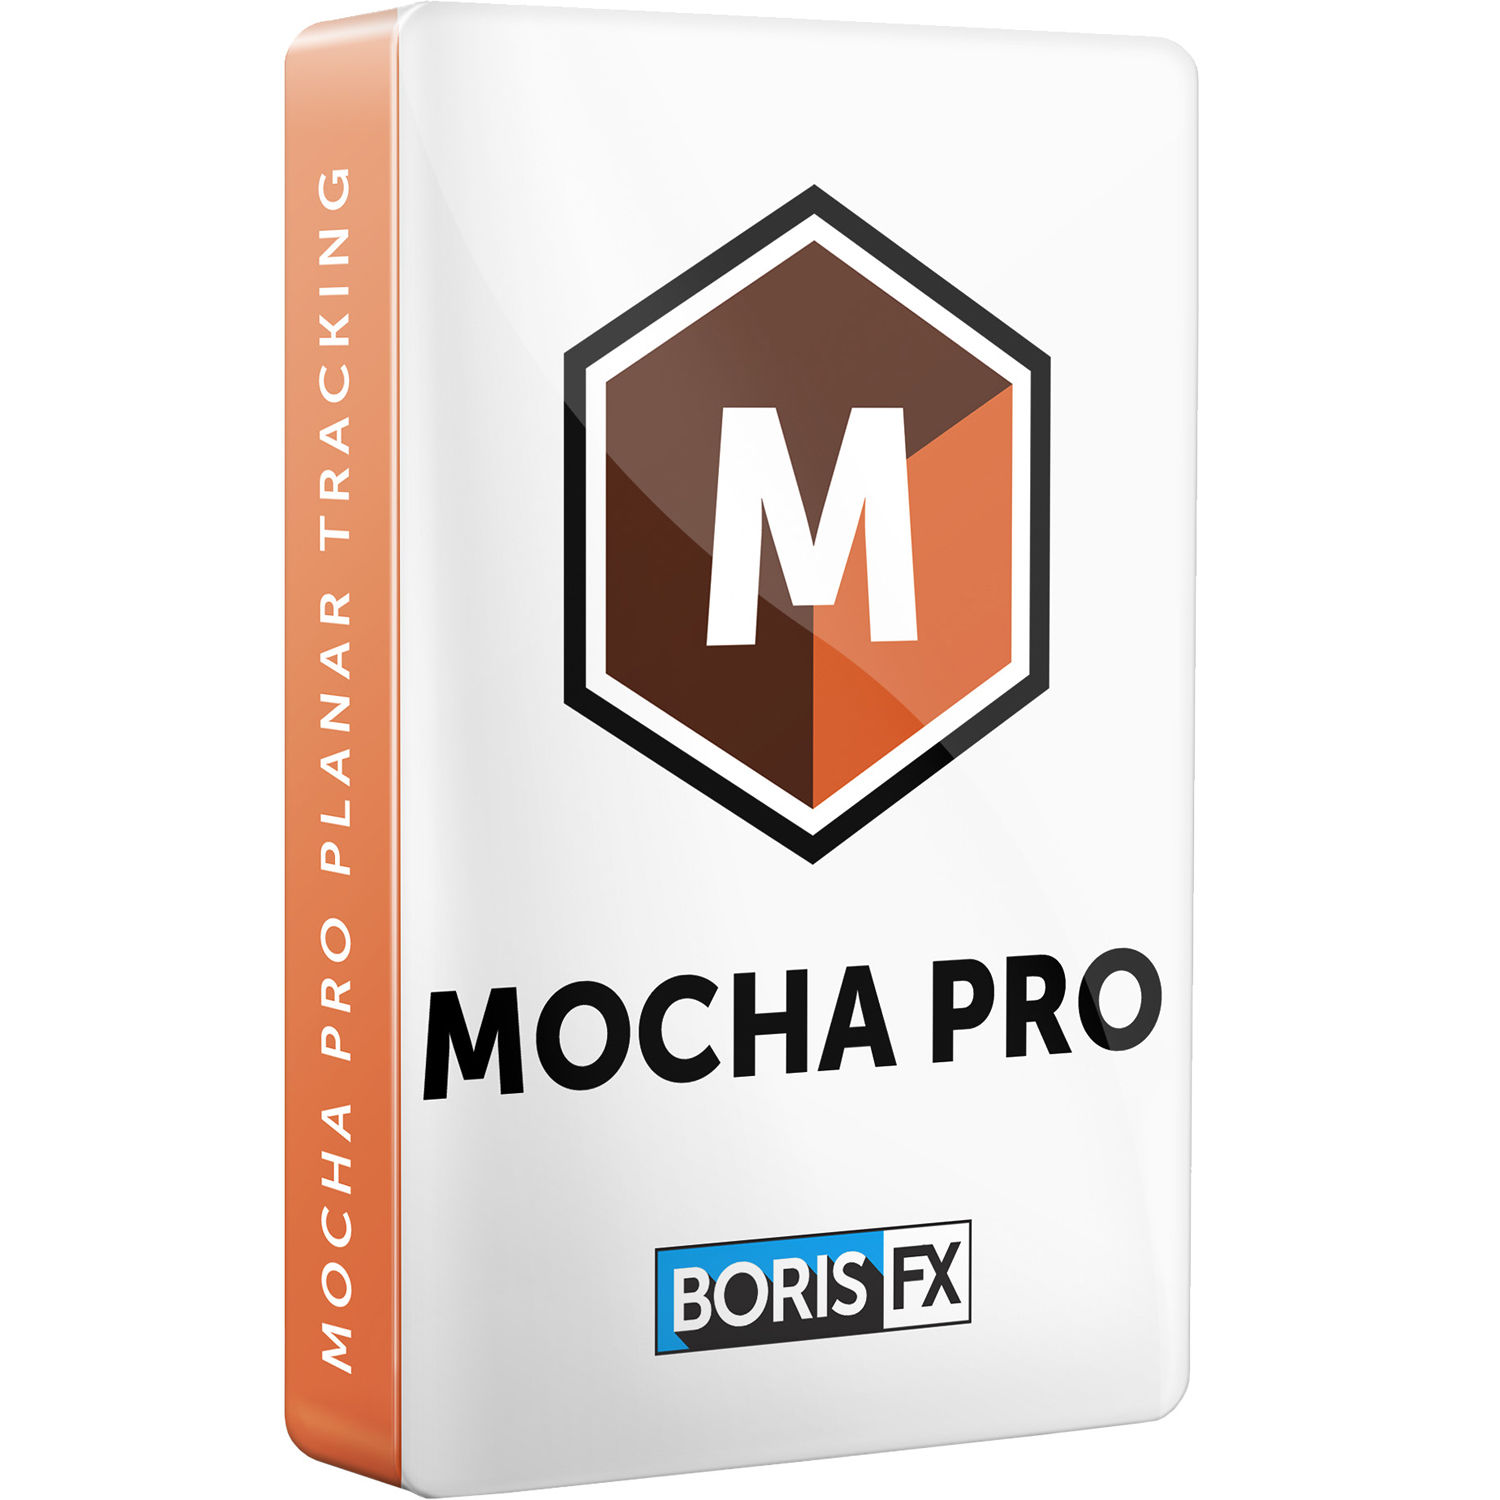 Mocha Pro 2019 Standalone App and Plug-Ins for Avid/Adobe/OFX  (Upgrade/Support Renewal, Download)